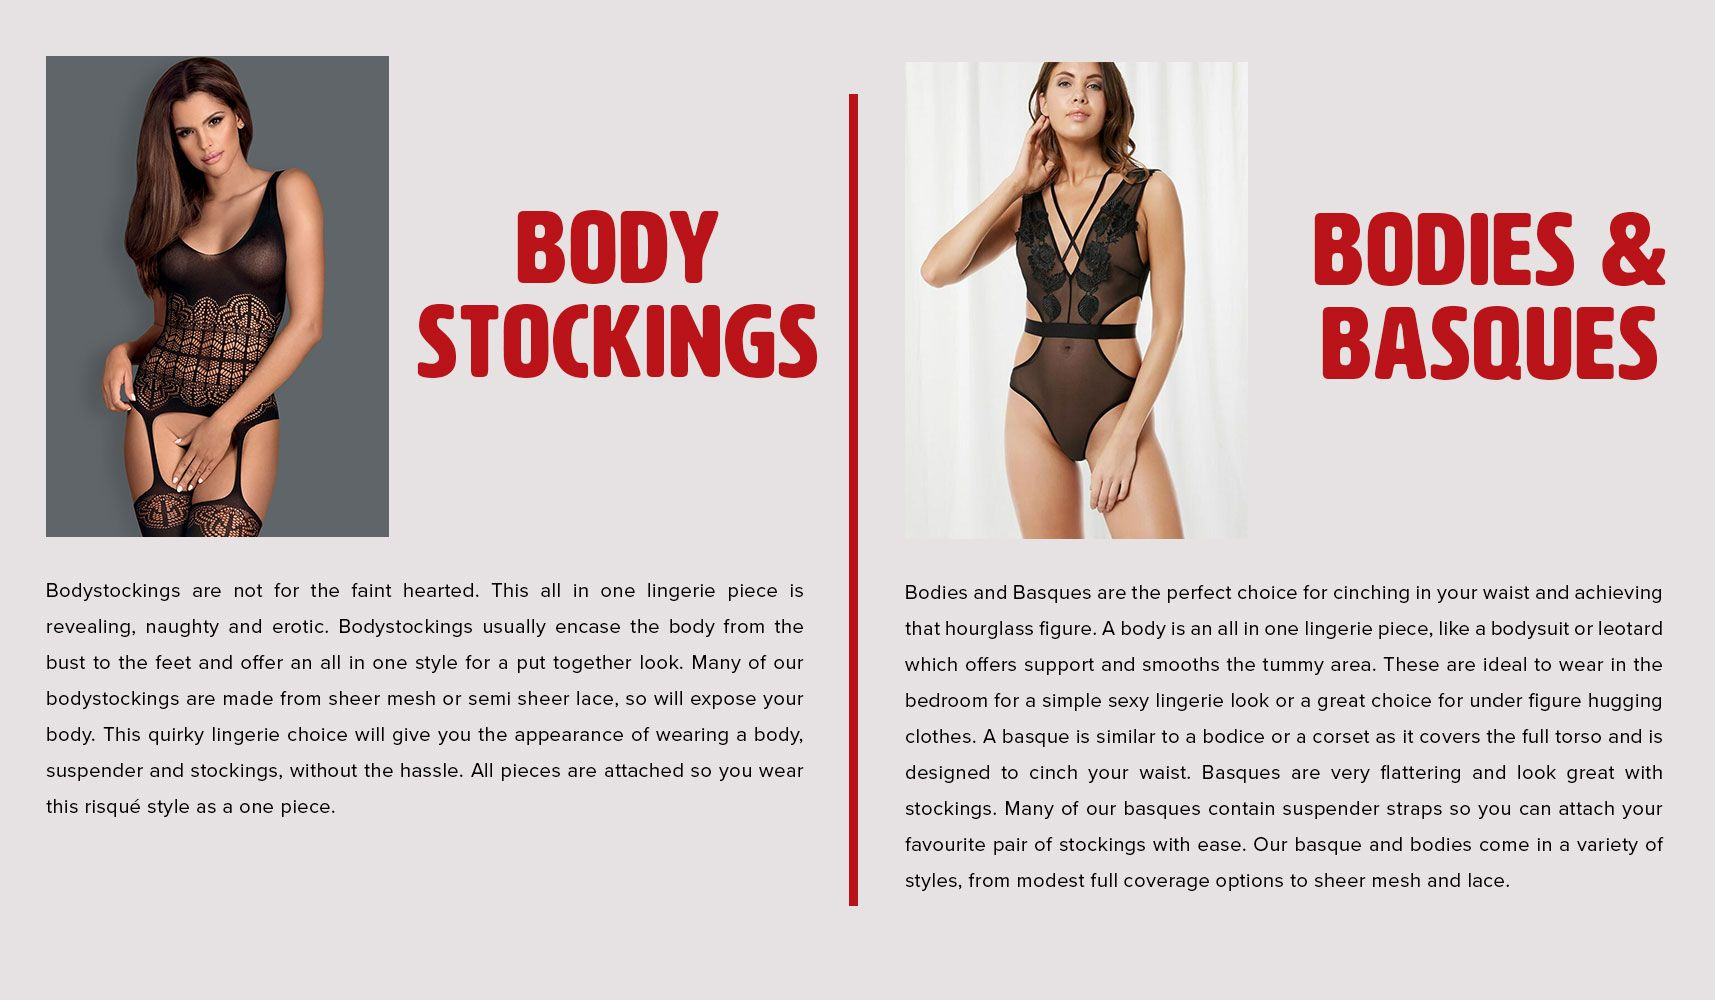 bodystockings bodies basques